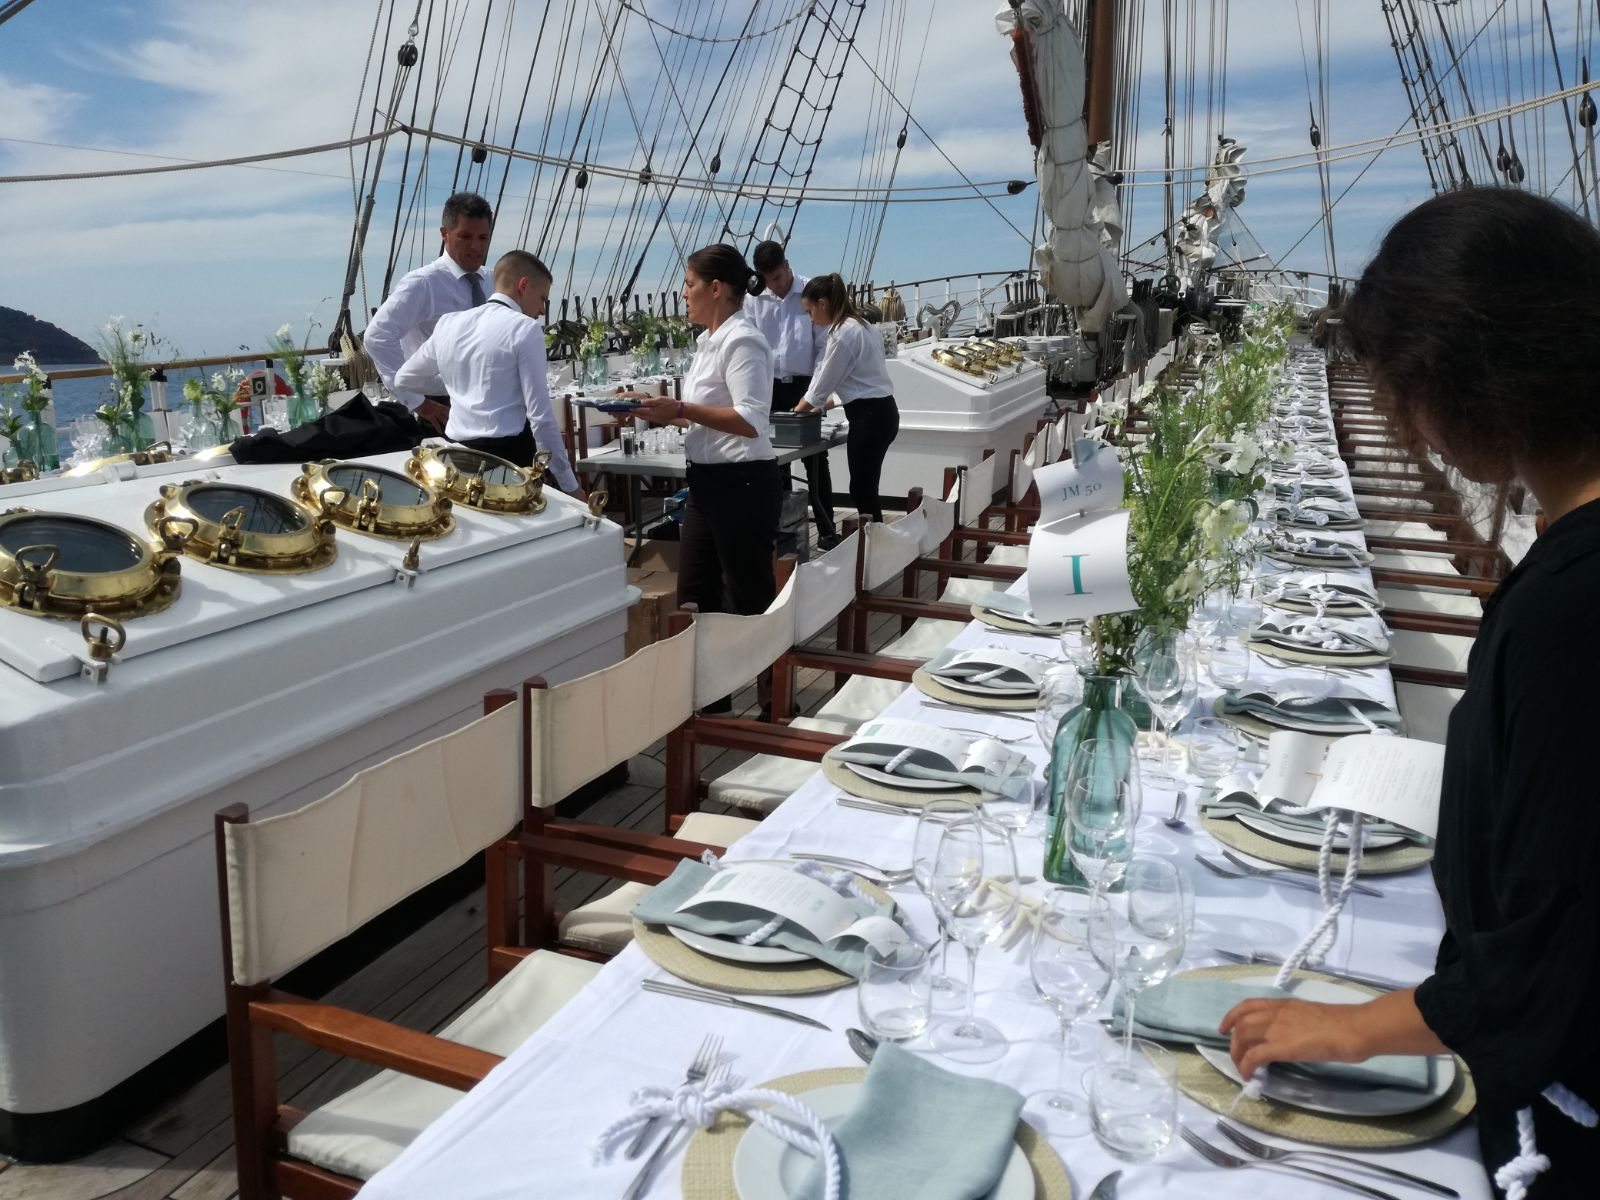 Matrimonio In Yacht : Matrimonio sullo yacht am charter